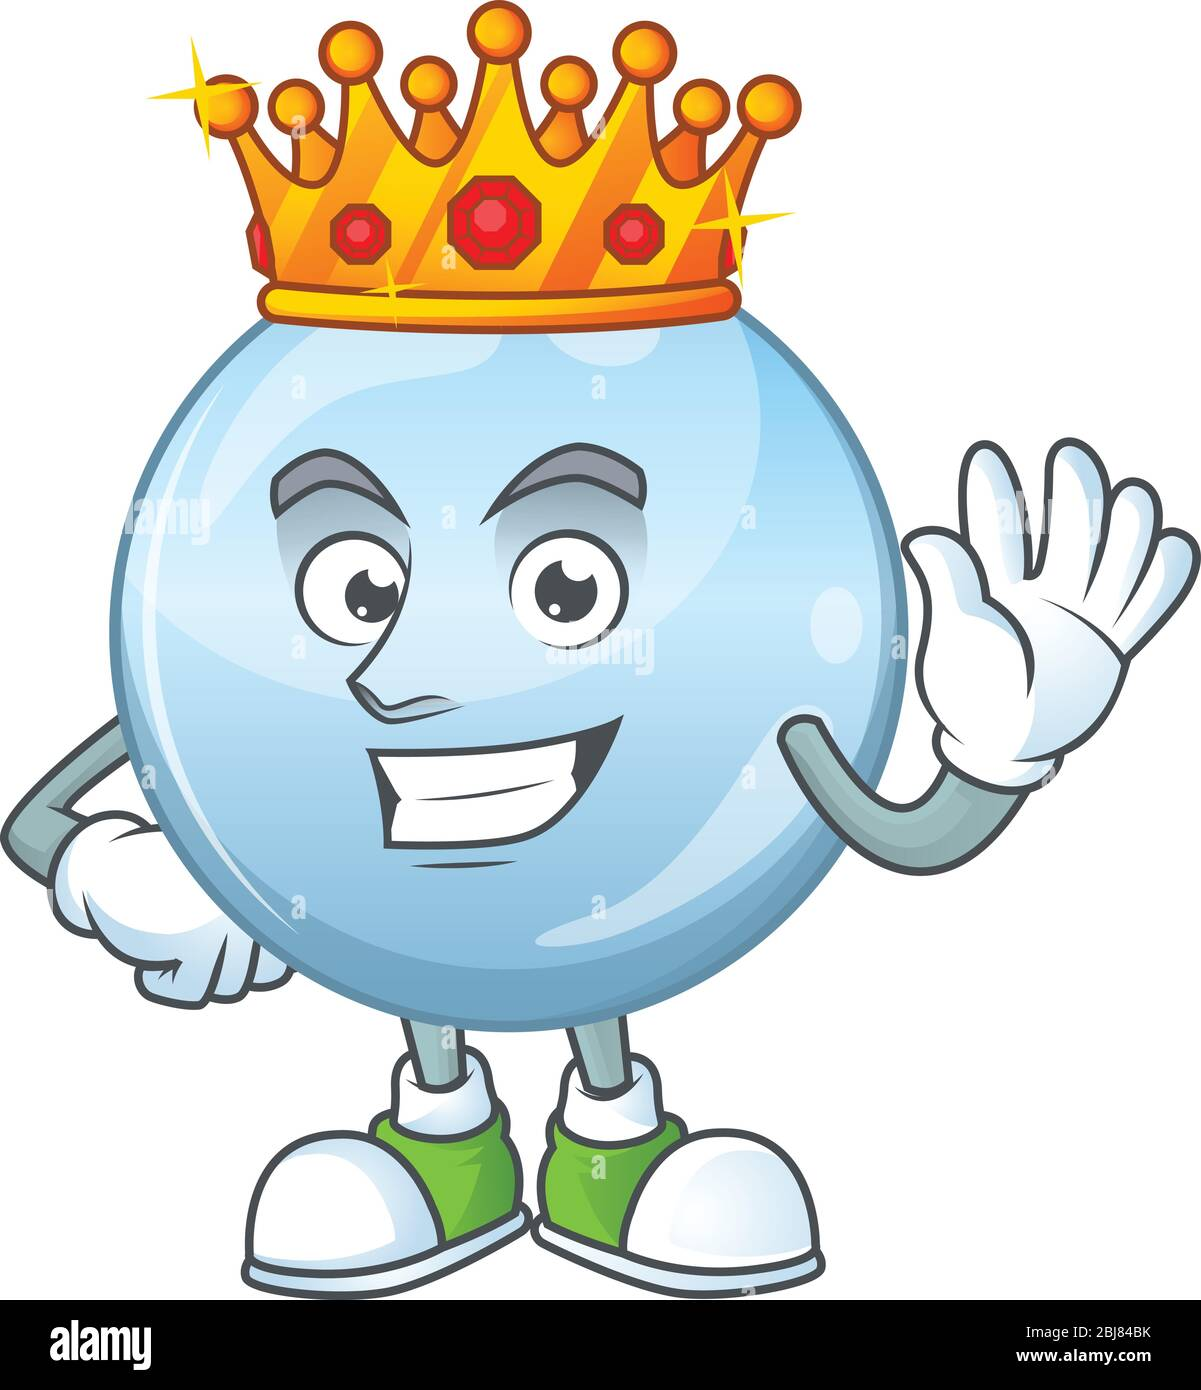 Cartoon King Character Wearing Crown High Resolution Stock Photography And Images Alamy Cartoon king character illustration wearing a crown, holding a sceptre and giving a thumbs up. https www alamy com the charismatic king of collagen droplets cartoon character design wearing gold crown image355450247 html